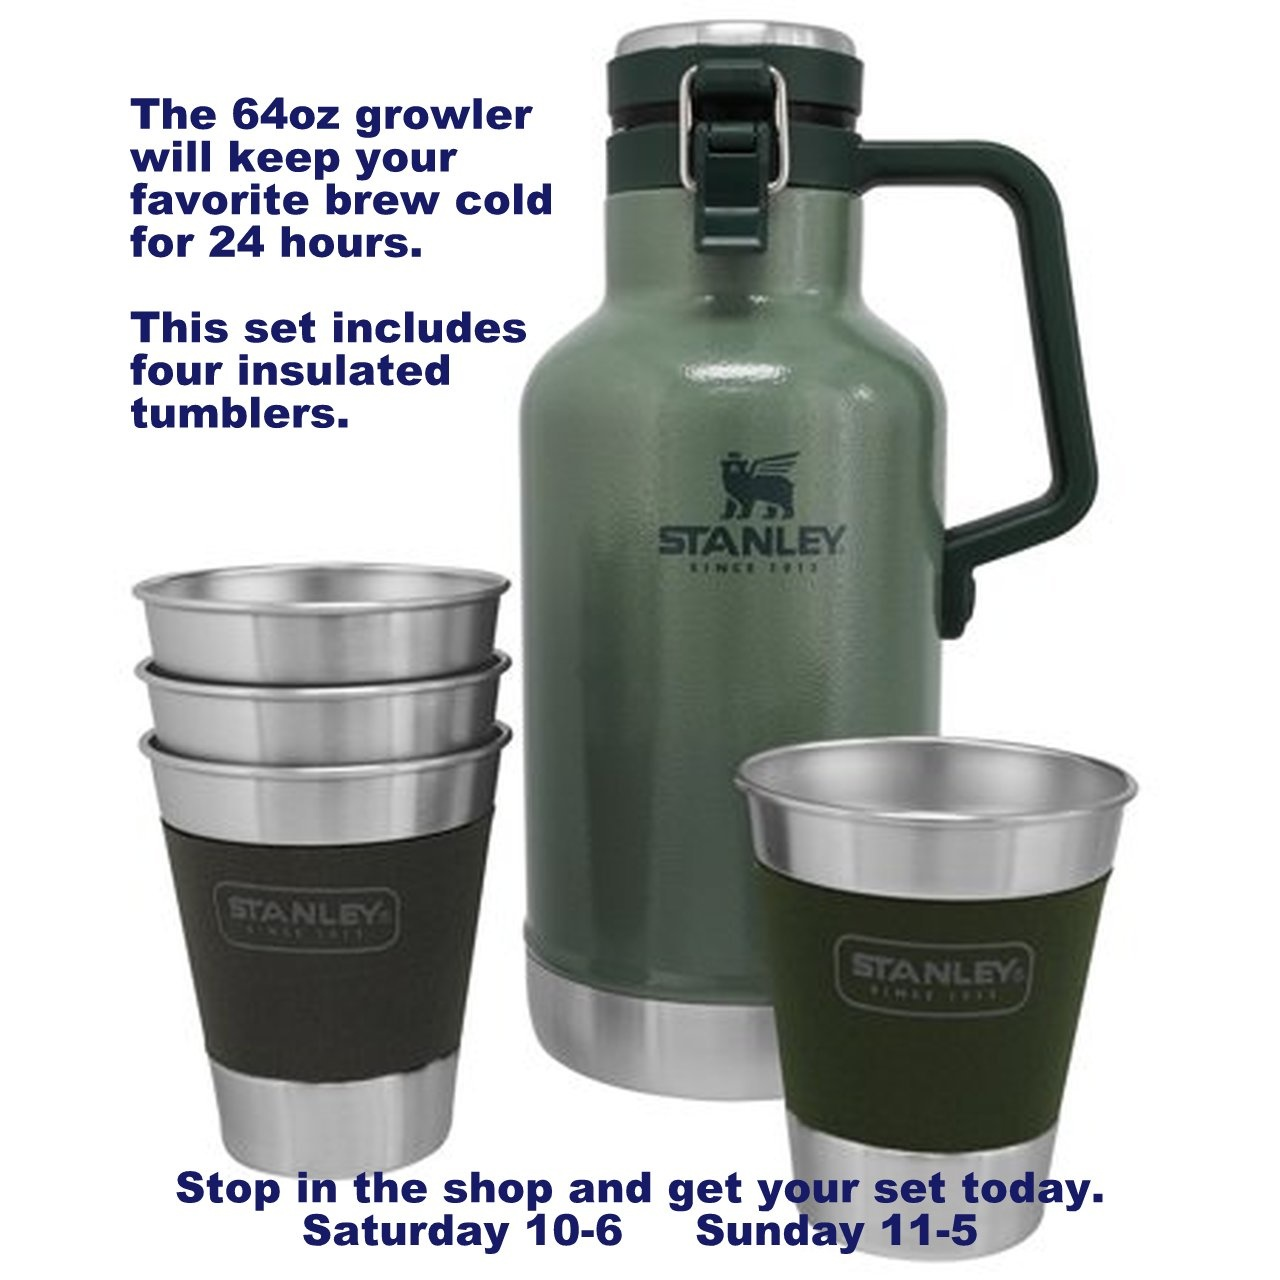 Stanley Growler Gift Set